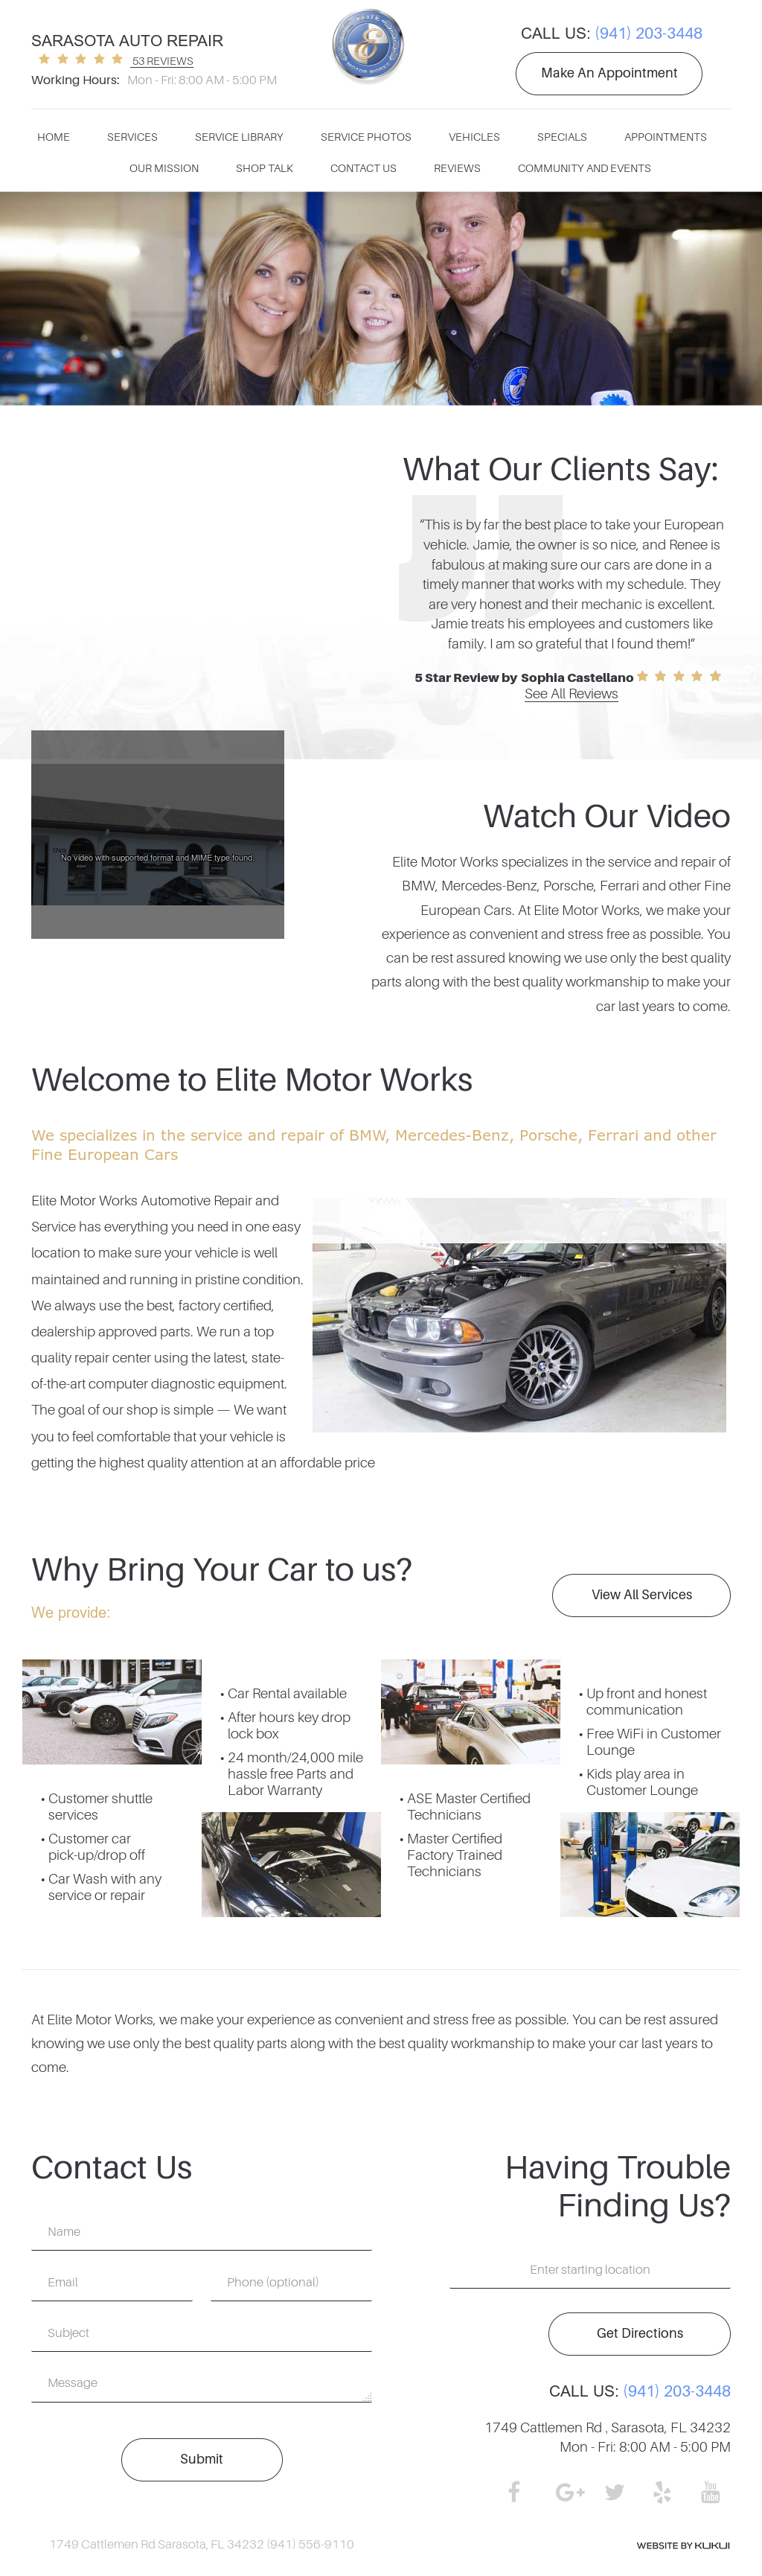 Elite Motor Works Competitors, Revenue and Employees - Owler